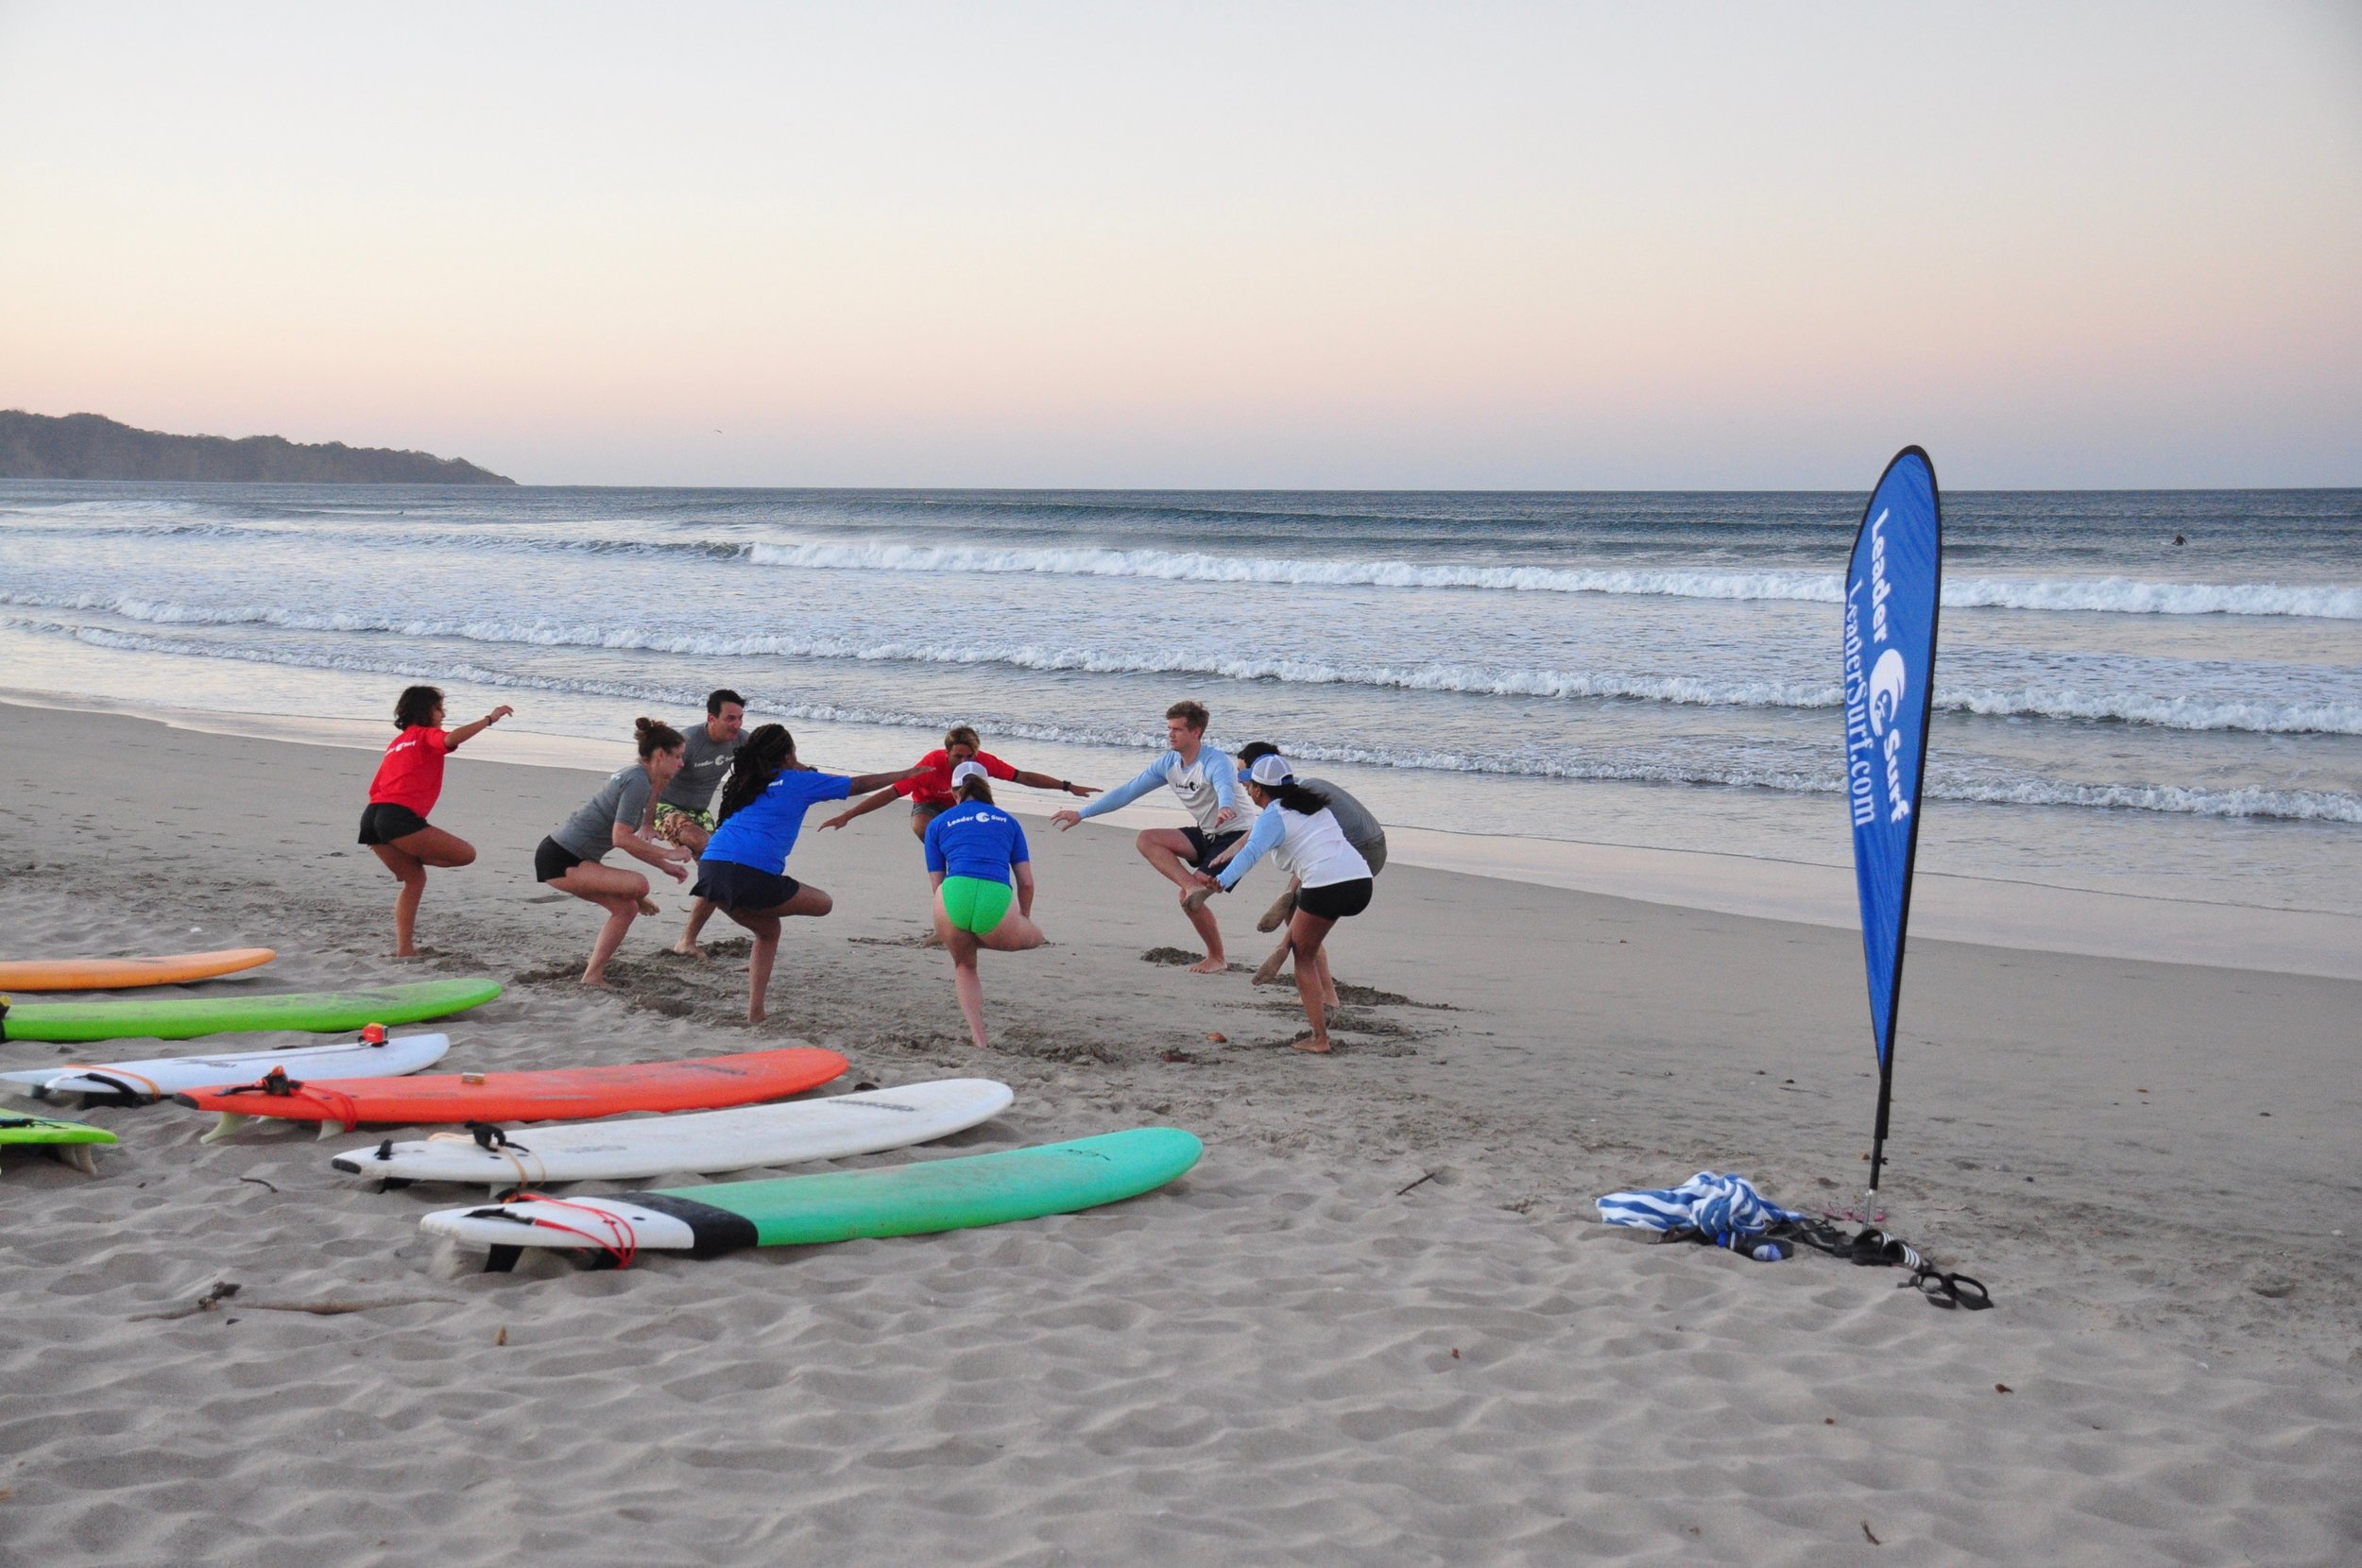 Morning stretch before surf session